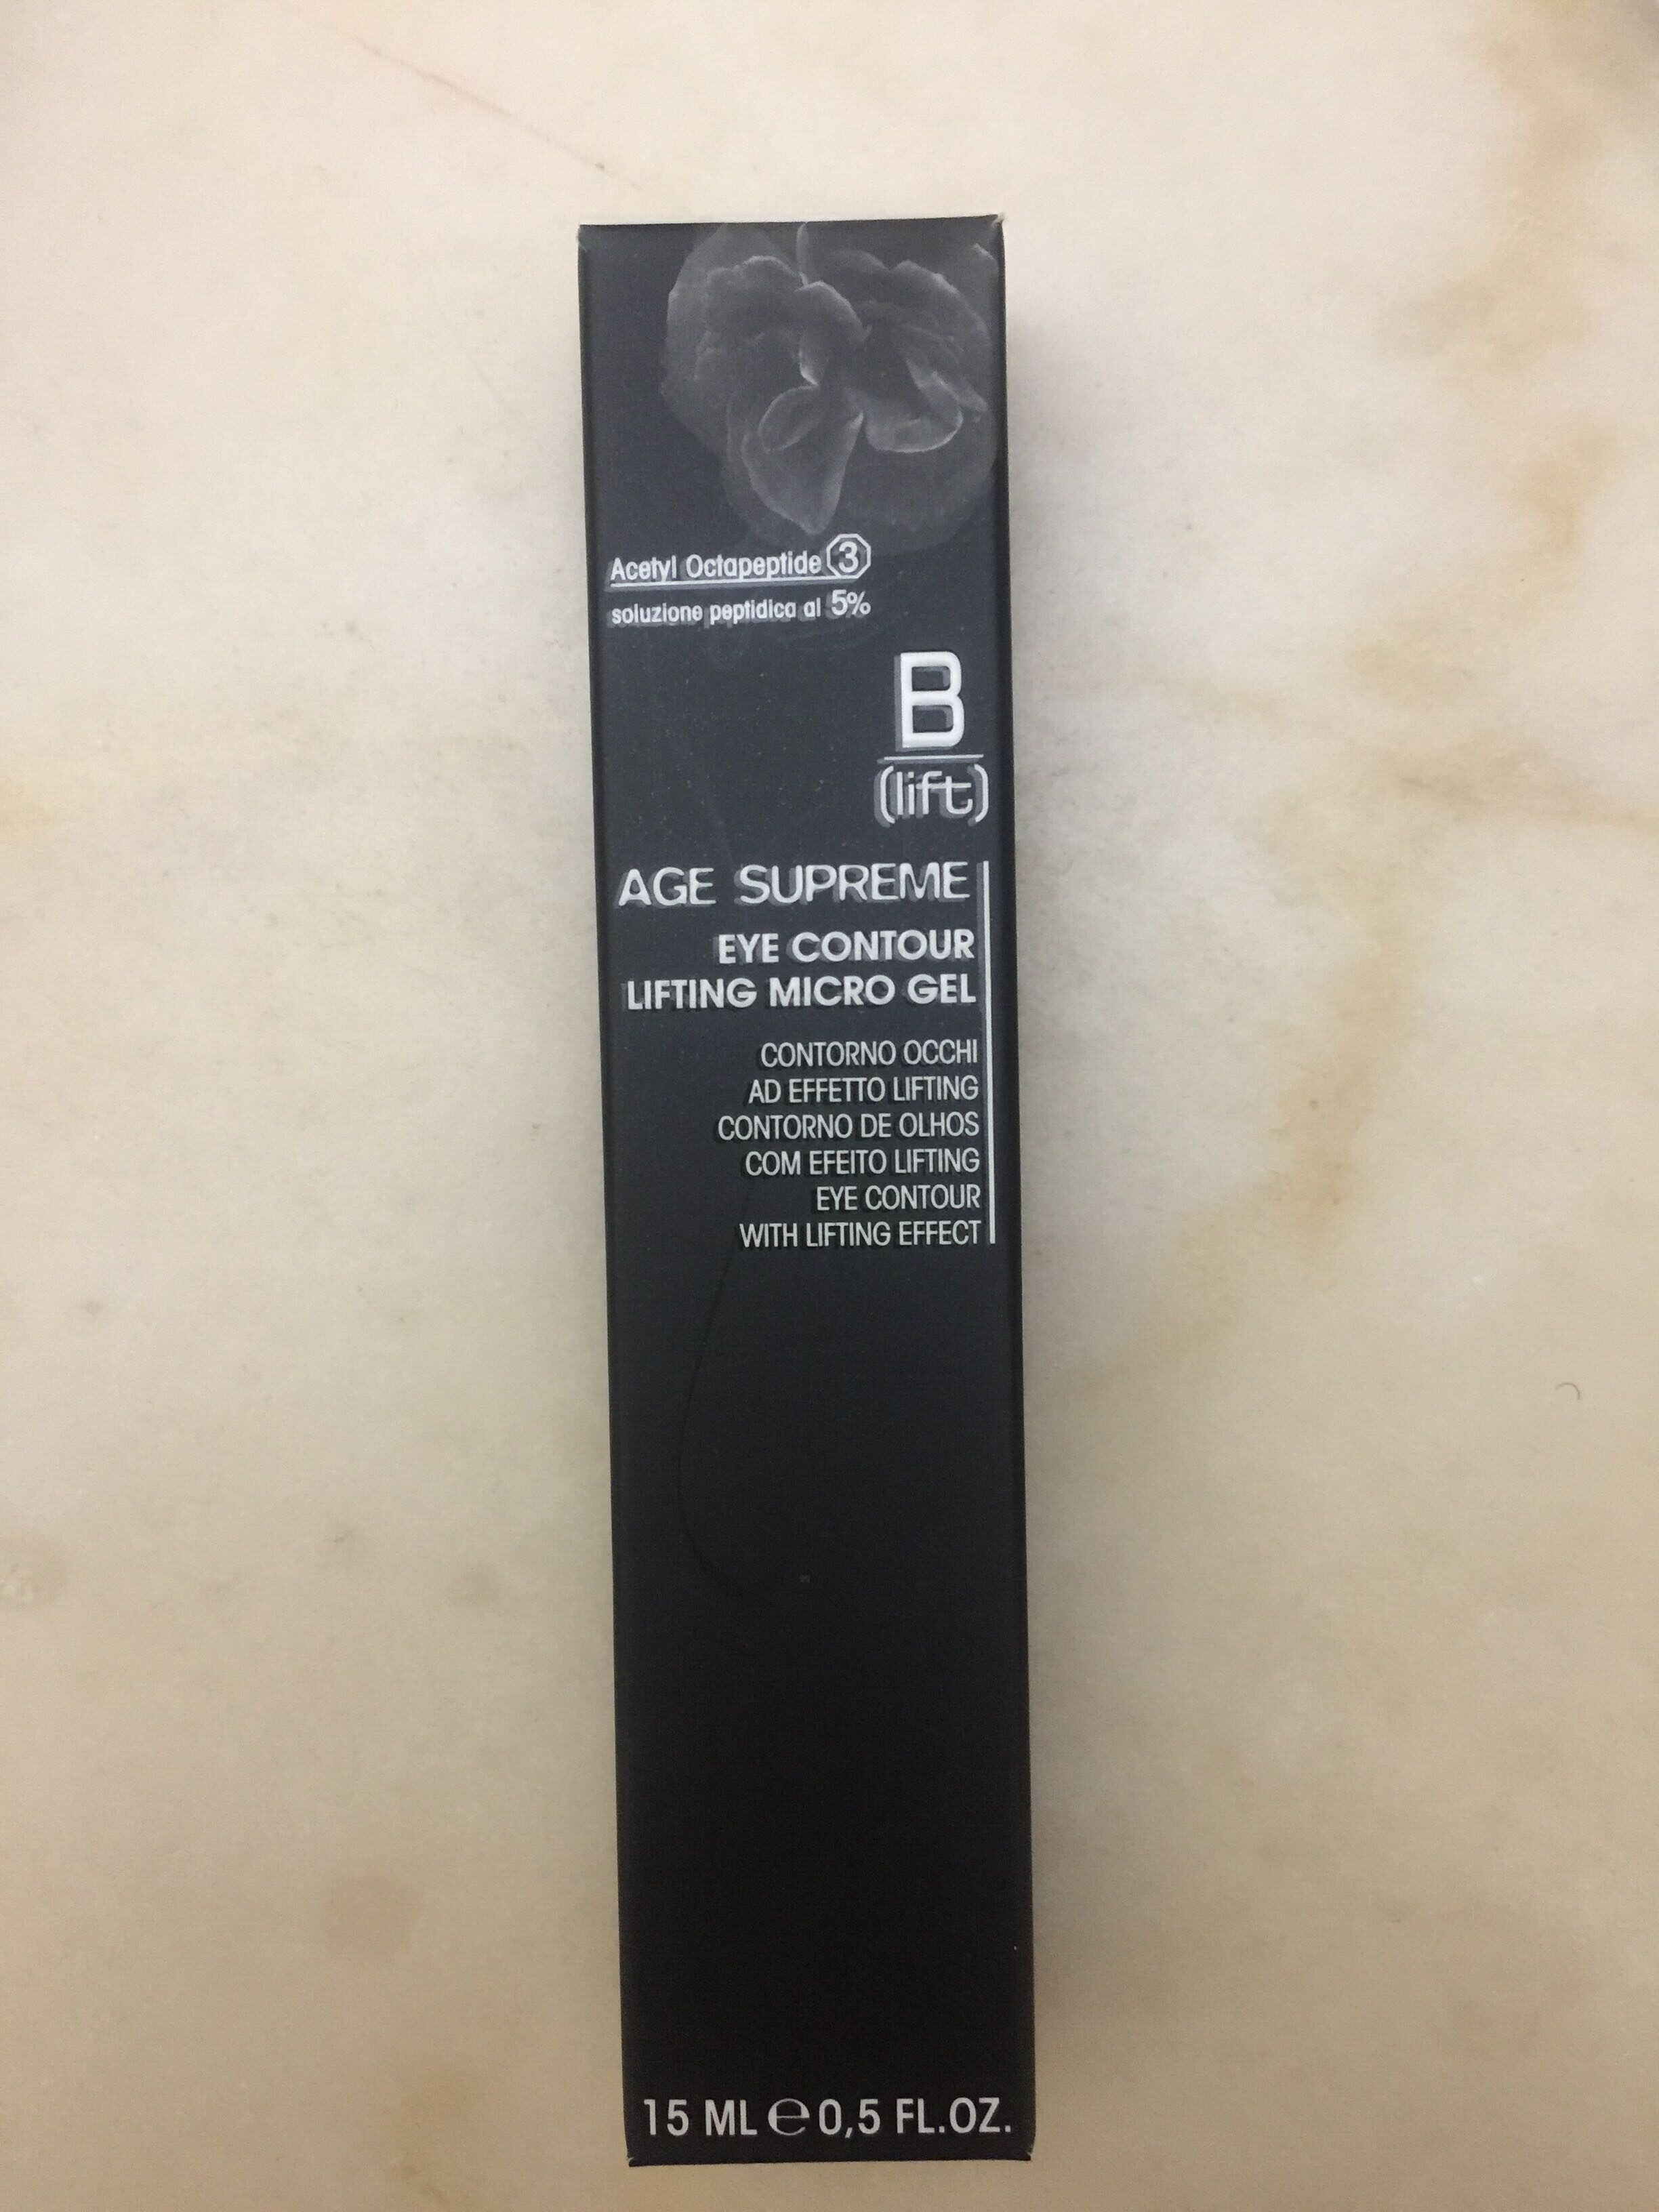 AGE SUPREME EYE CONTOUR - Product